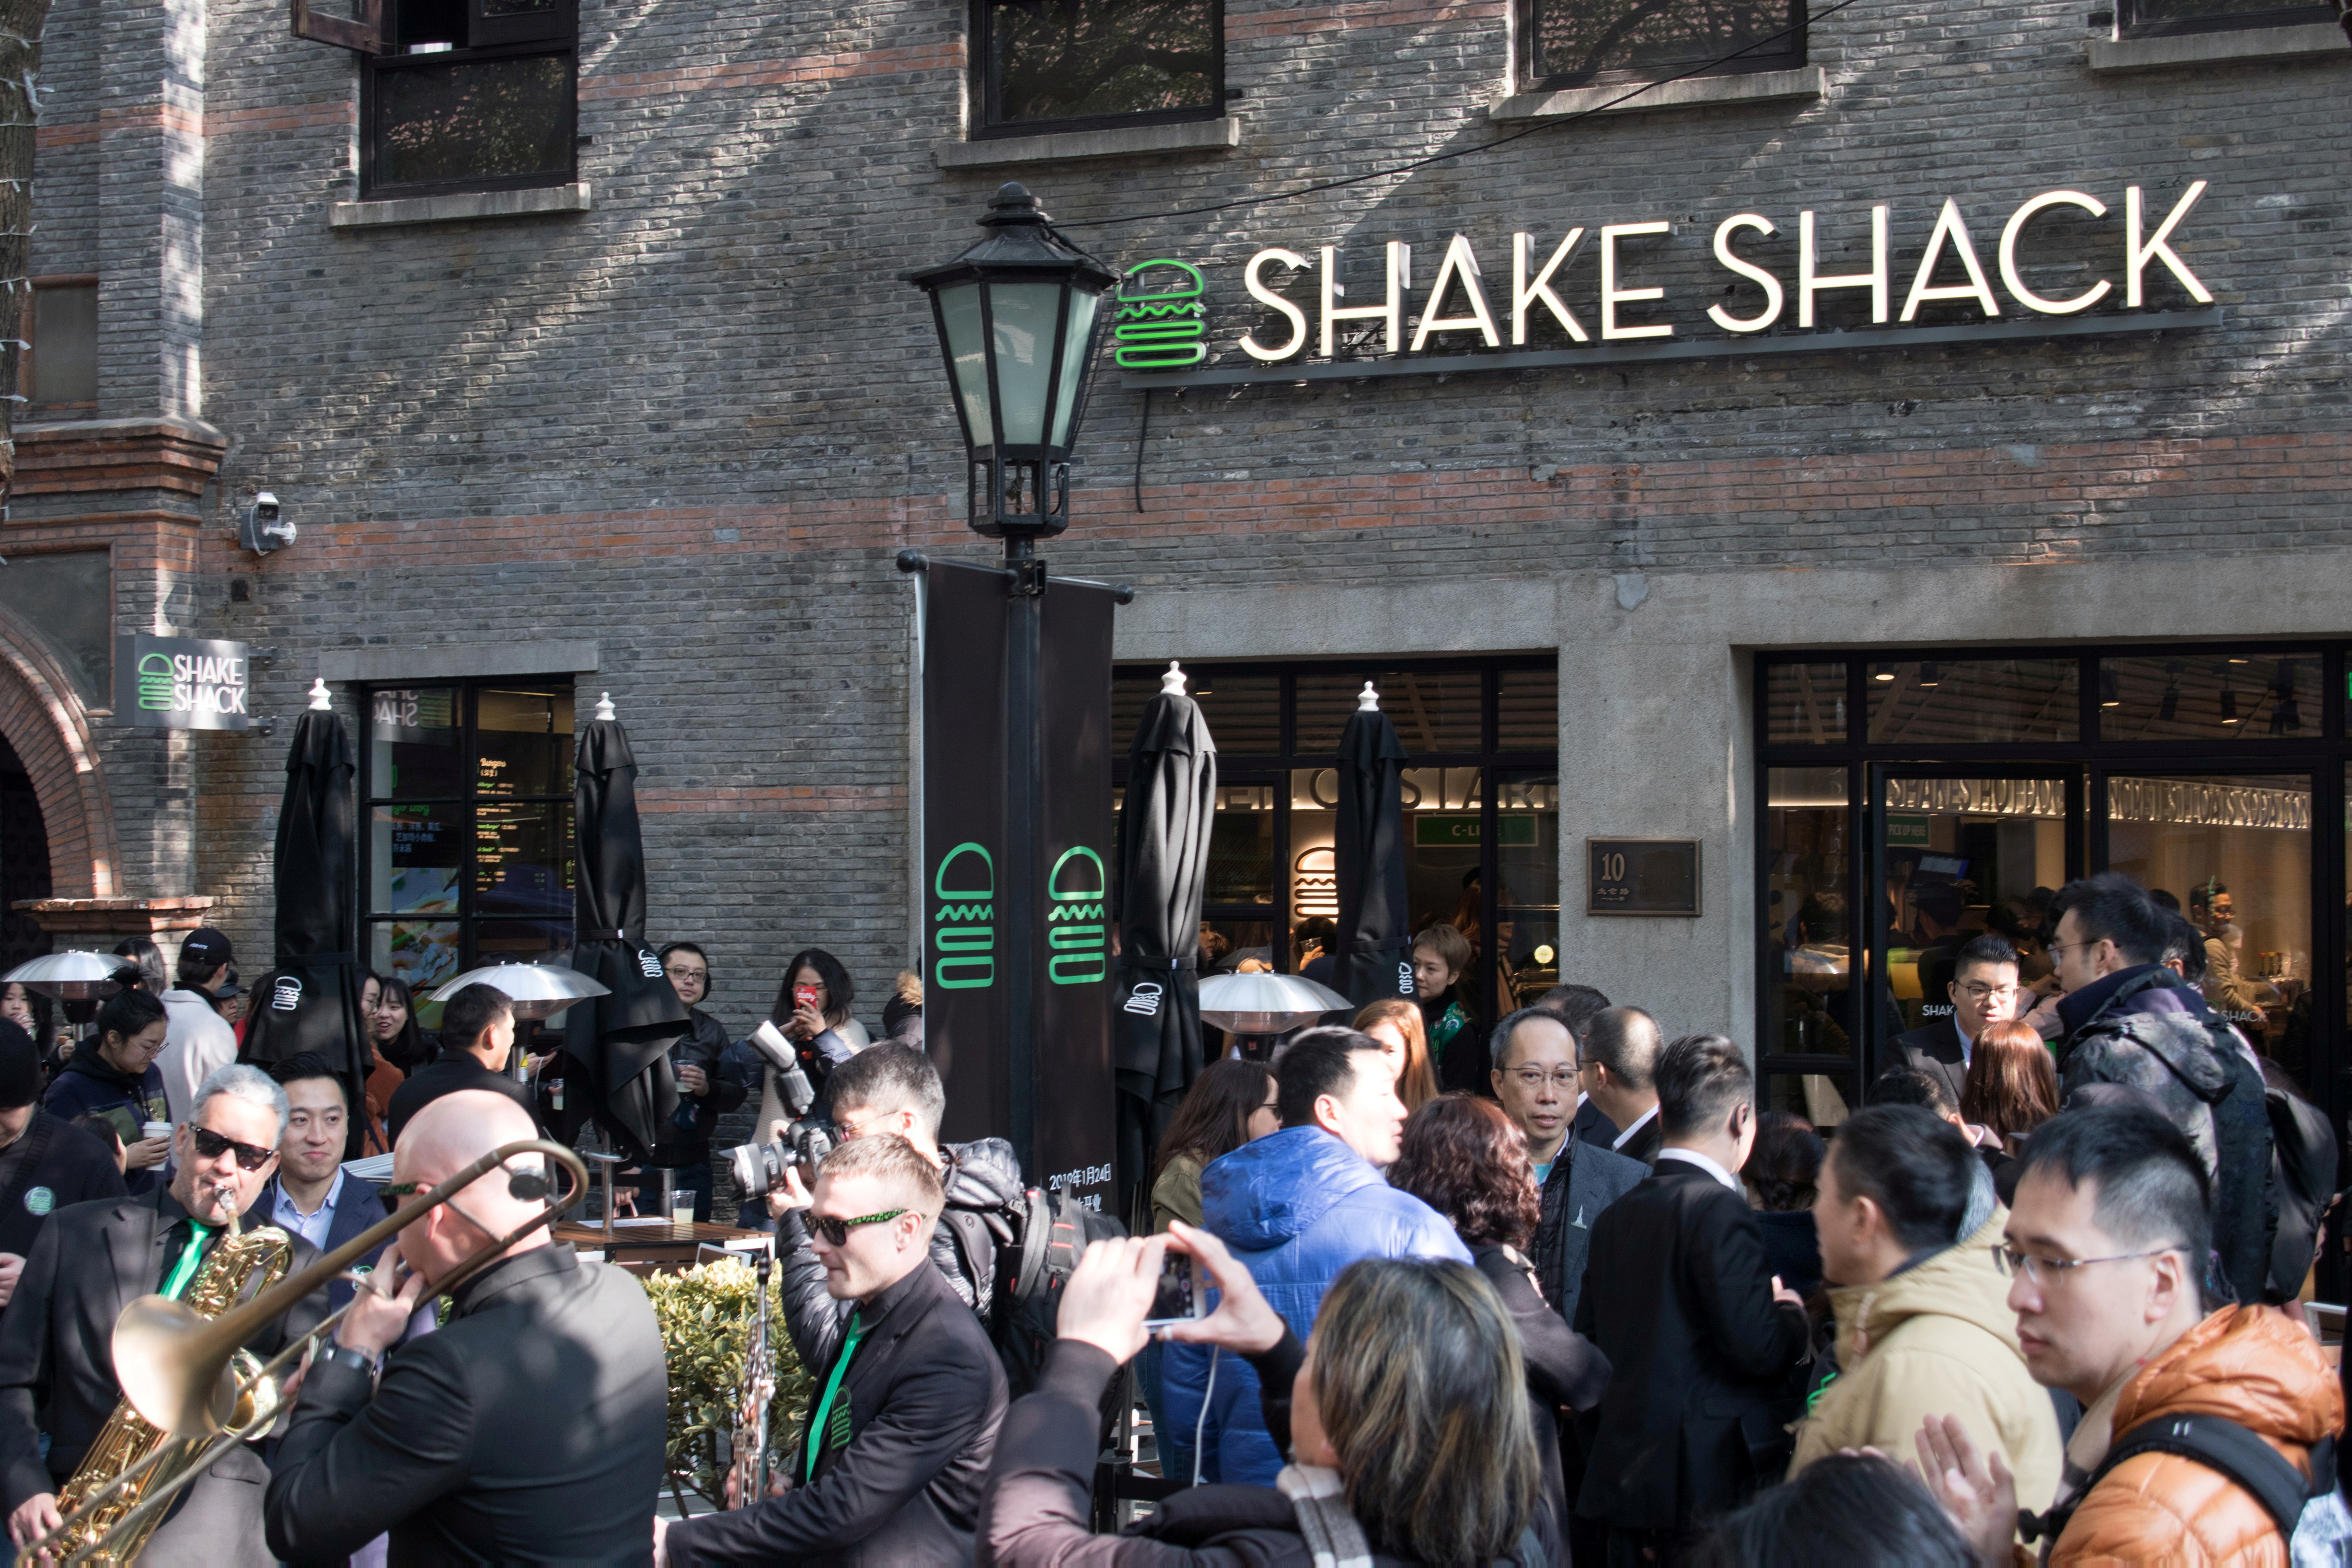 People gather in front of a restaurant of U.S. burger chain Shake Shack on its opening in Shanghai, China, January 24, 2019. REUTERS/Stringer